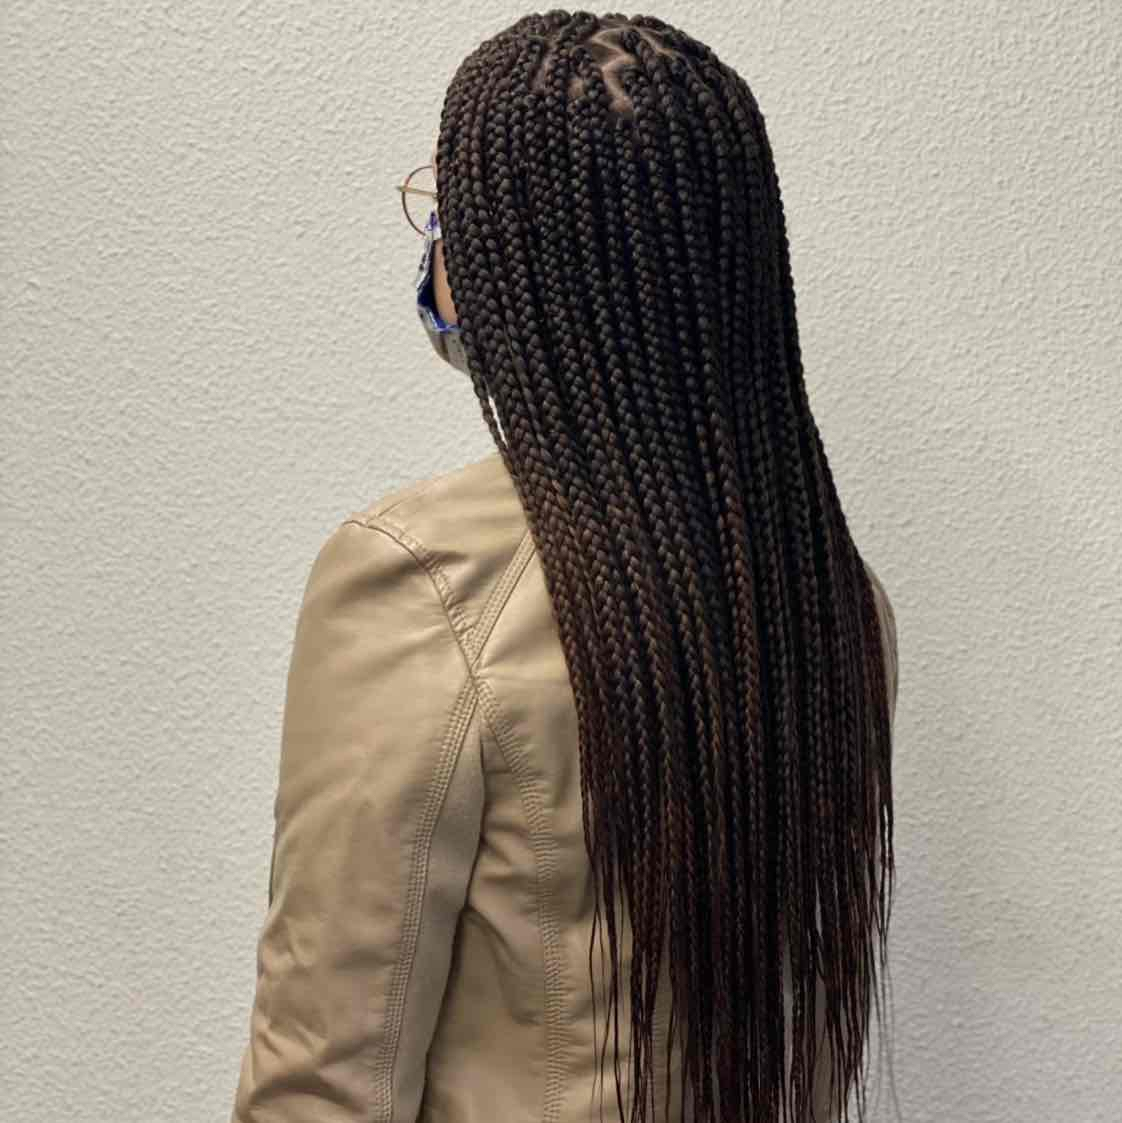 salon de coiffure afro tresse tresses box braids crochet braids vanilles tissages paris 75 77 78 91 92 93 94 95 GJSESTHR